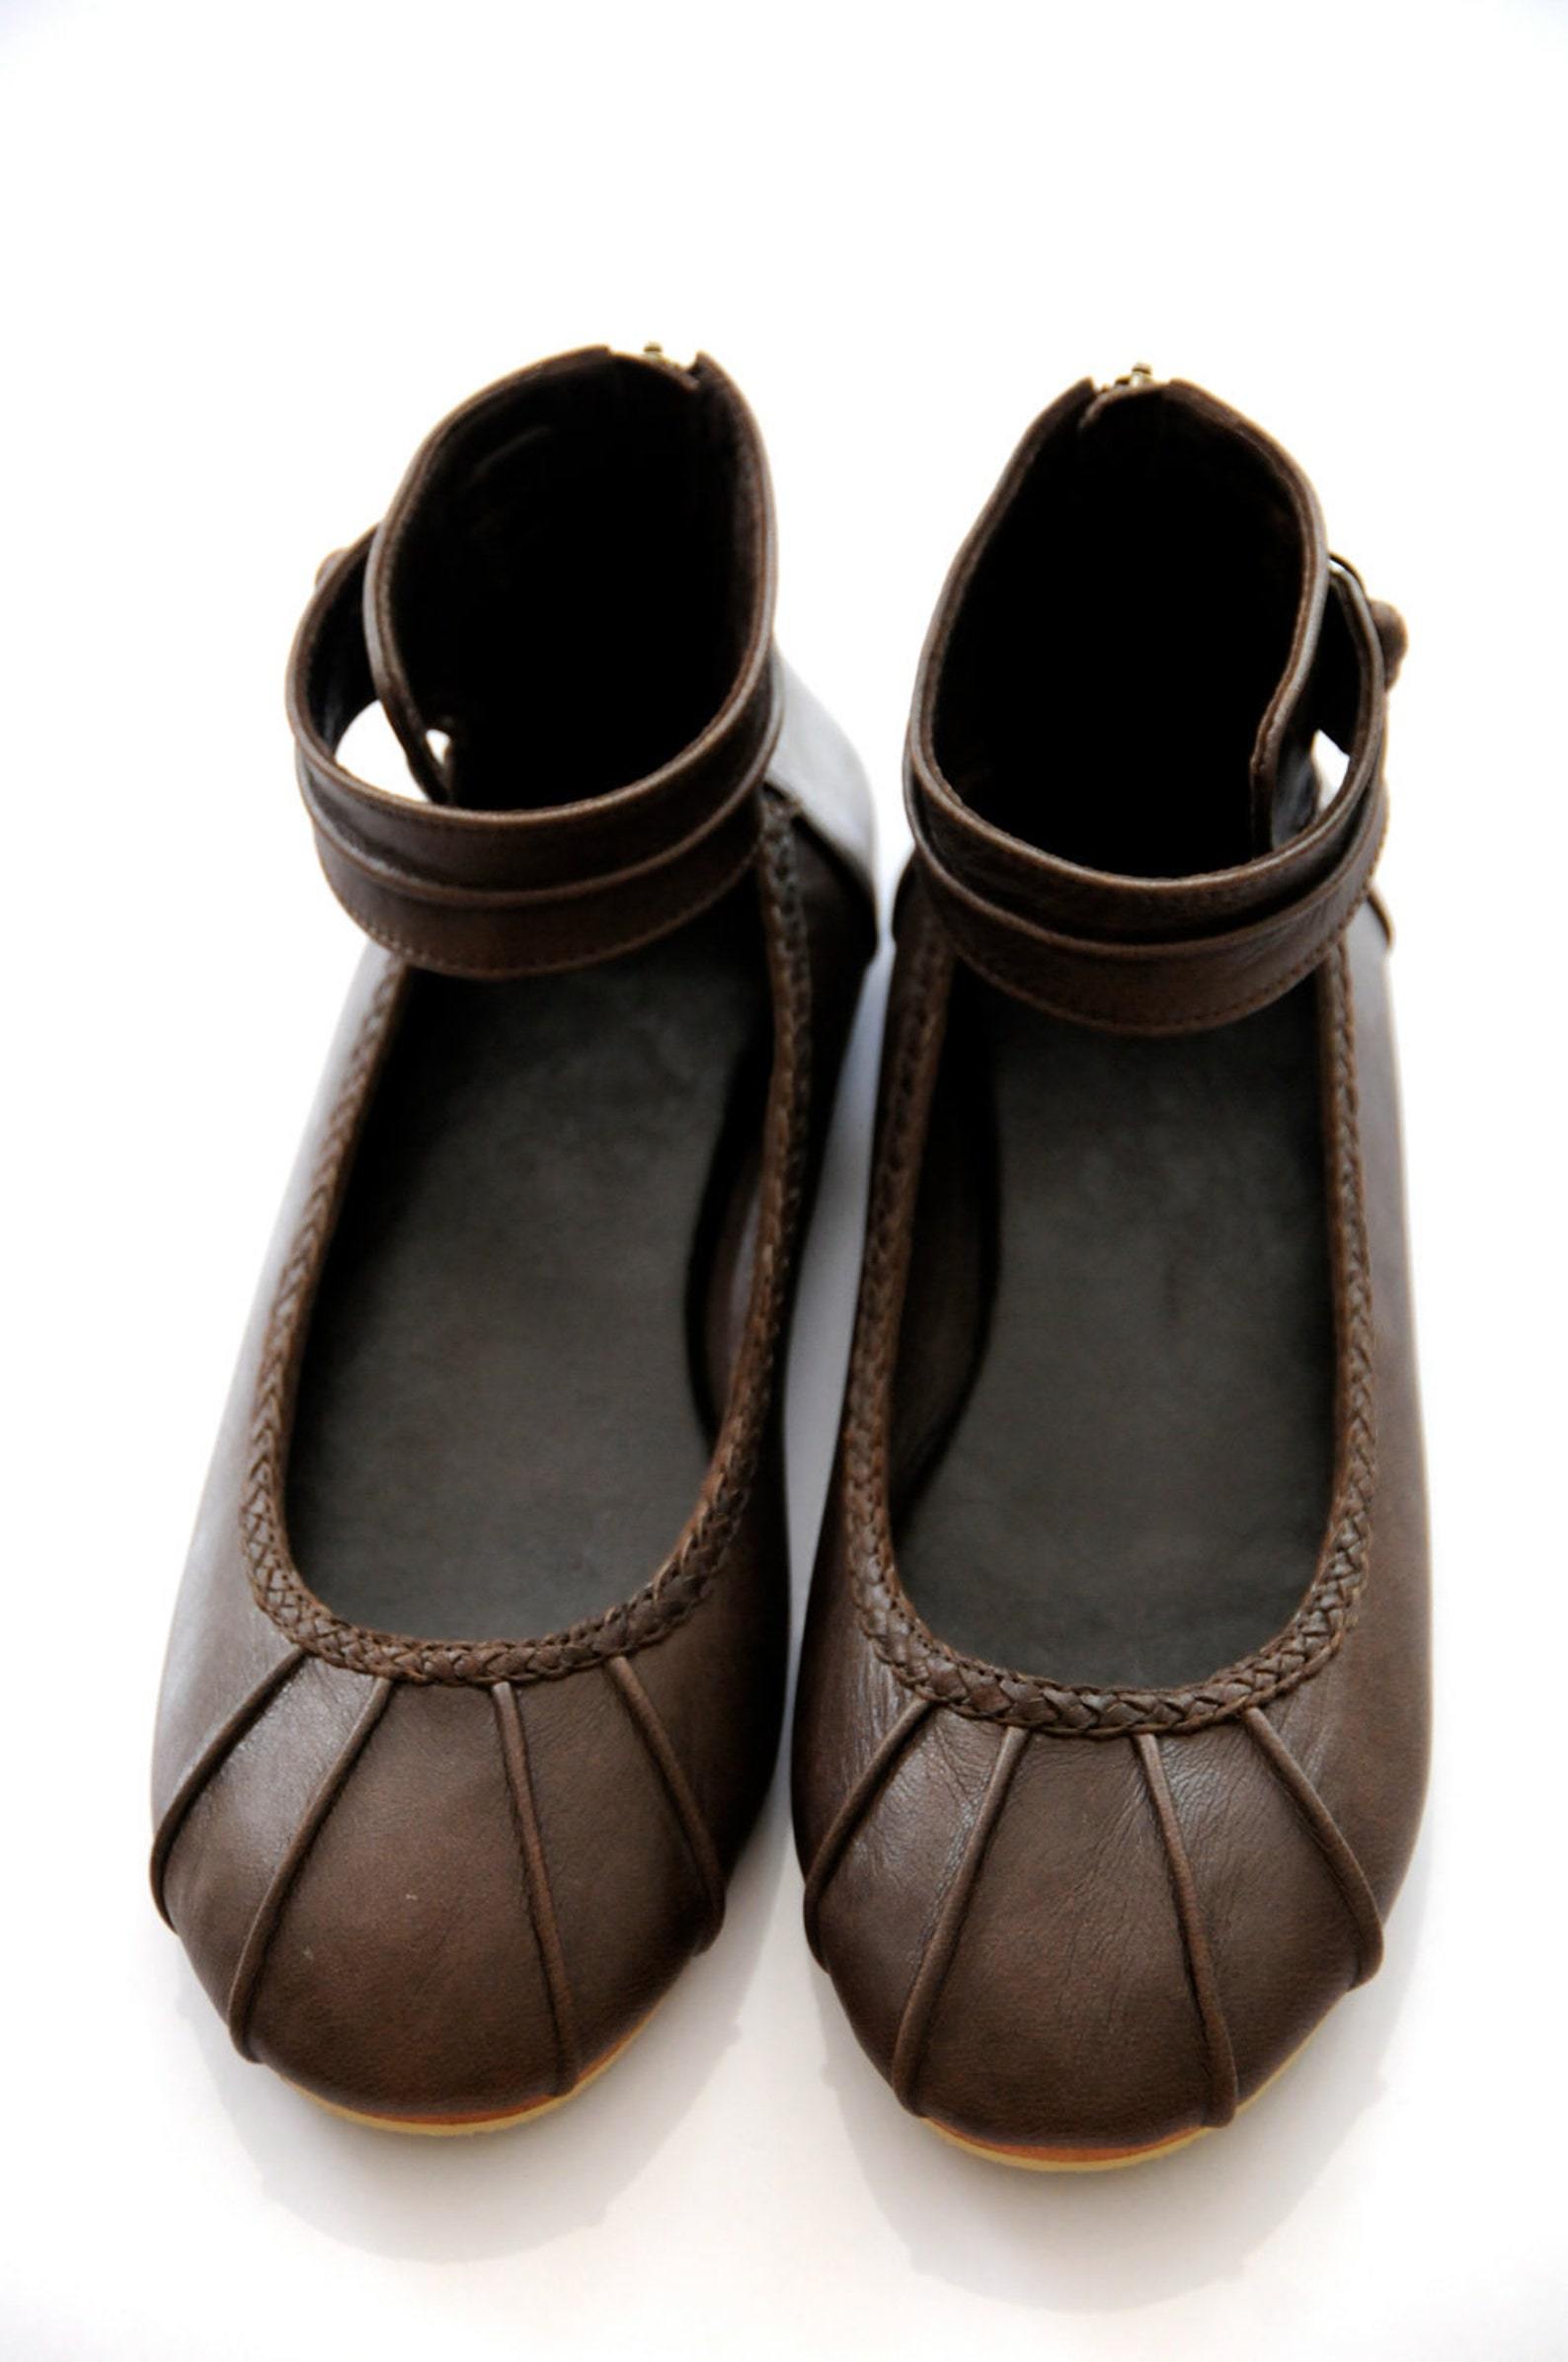 muse. ballet flats / flat shoes / cuffs / braided detail / leather shoes. sizes us 4-13, eur 35-43. available in different leath